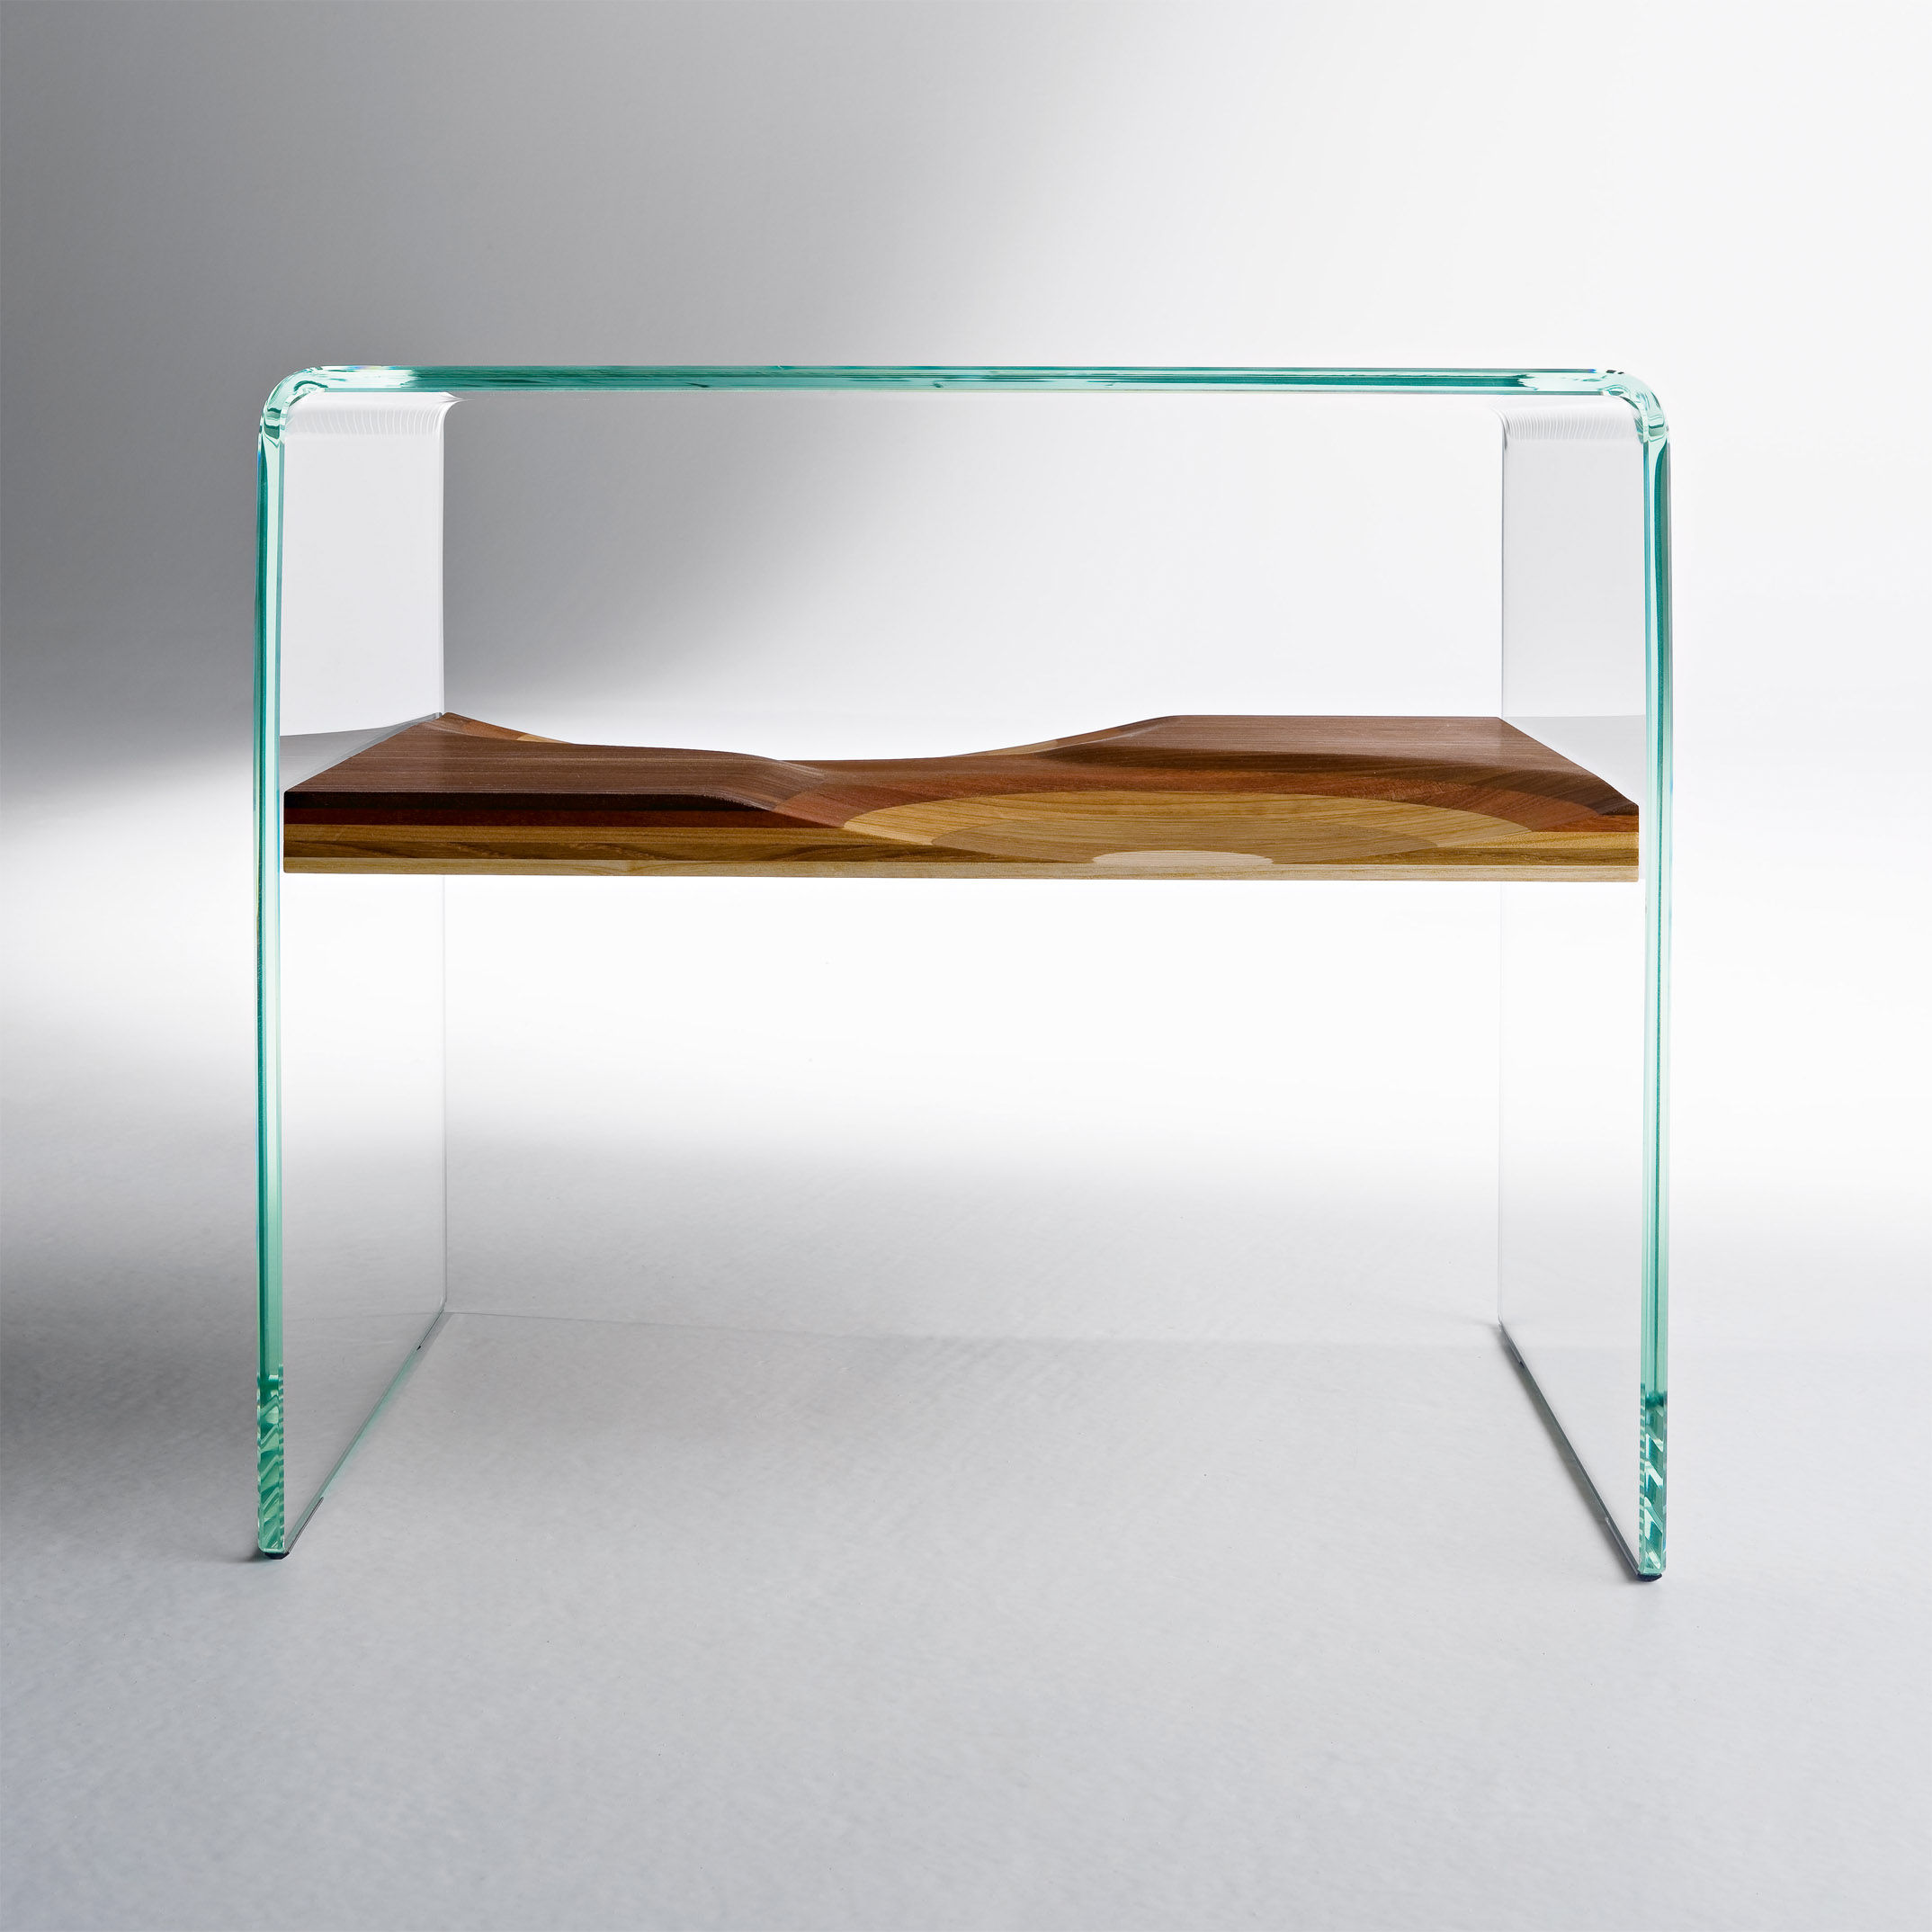 Table De Chevet Verre Table De Chevet Bifronte Transparent Horm Made In Design